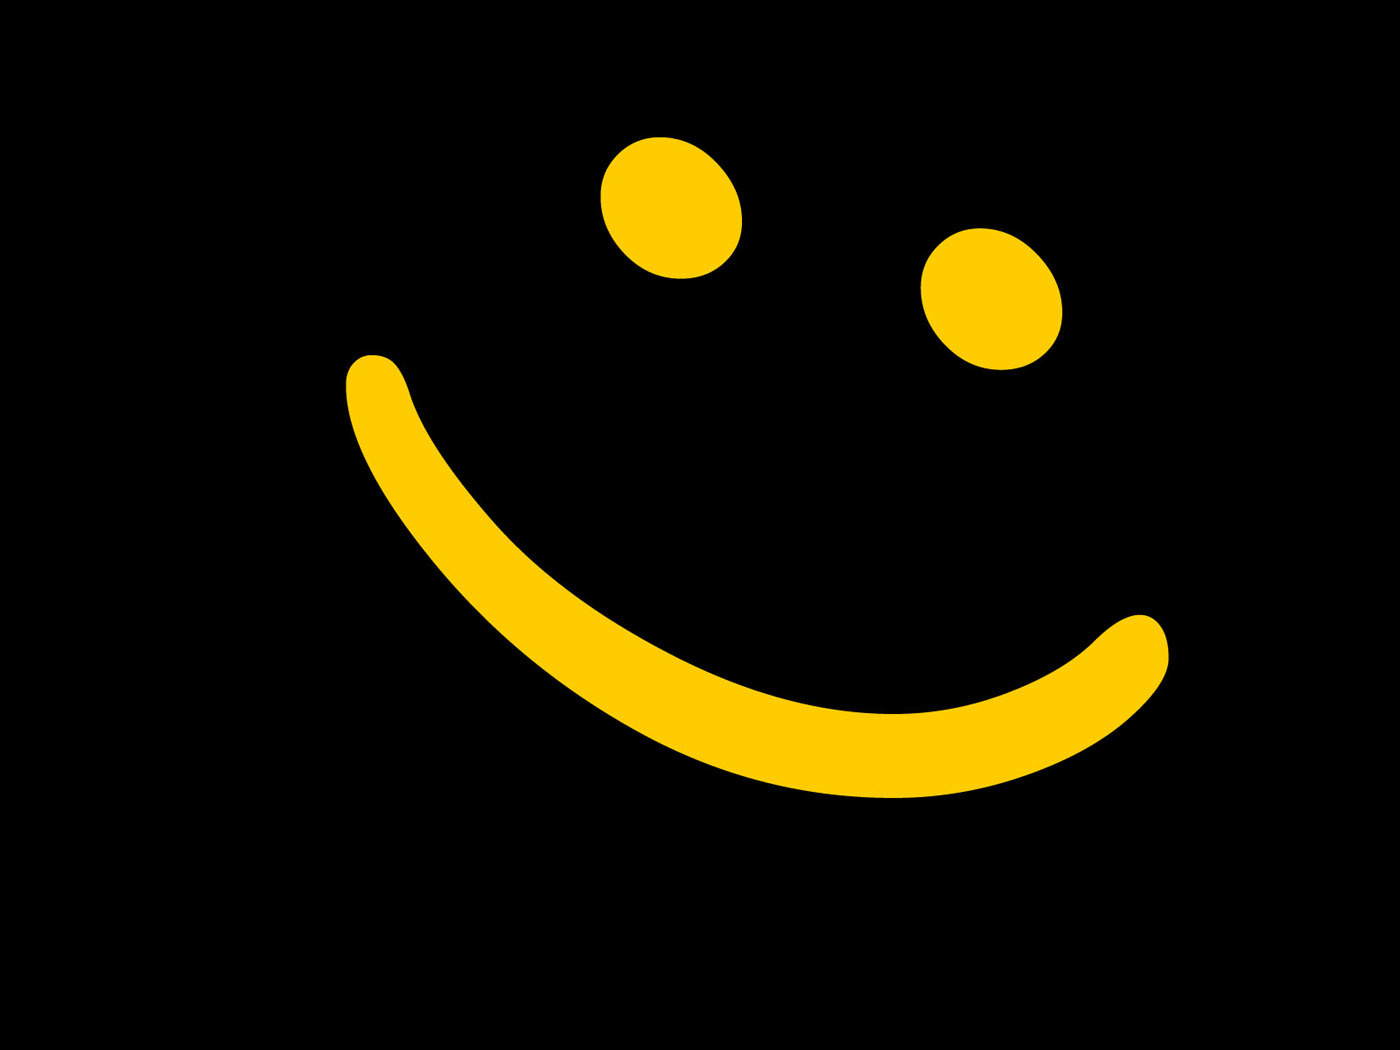 Smile Wallpapers 31227 1400x1050 px ~ HDWallSource.com